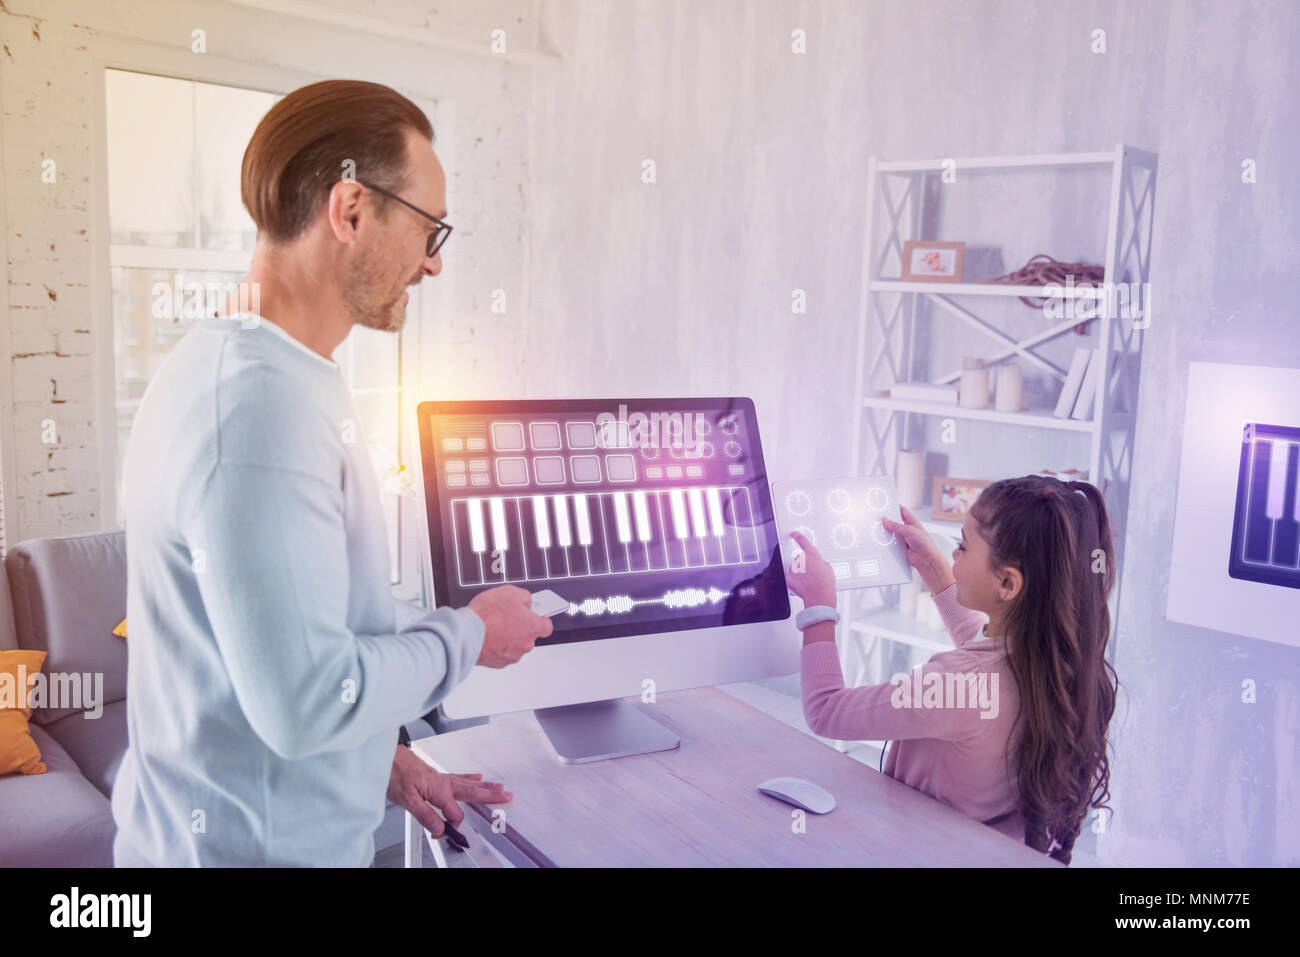 Enthusiastic pupil showing a tablet while having a lesson - Stock Image